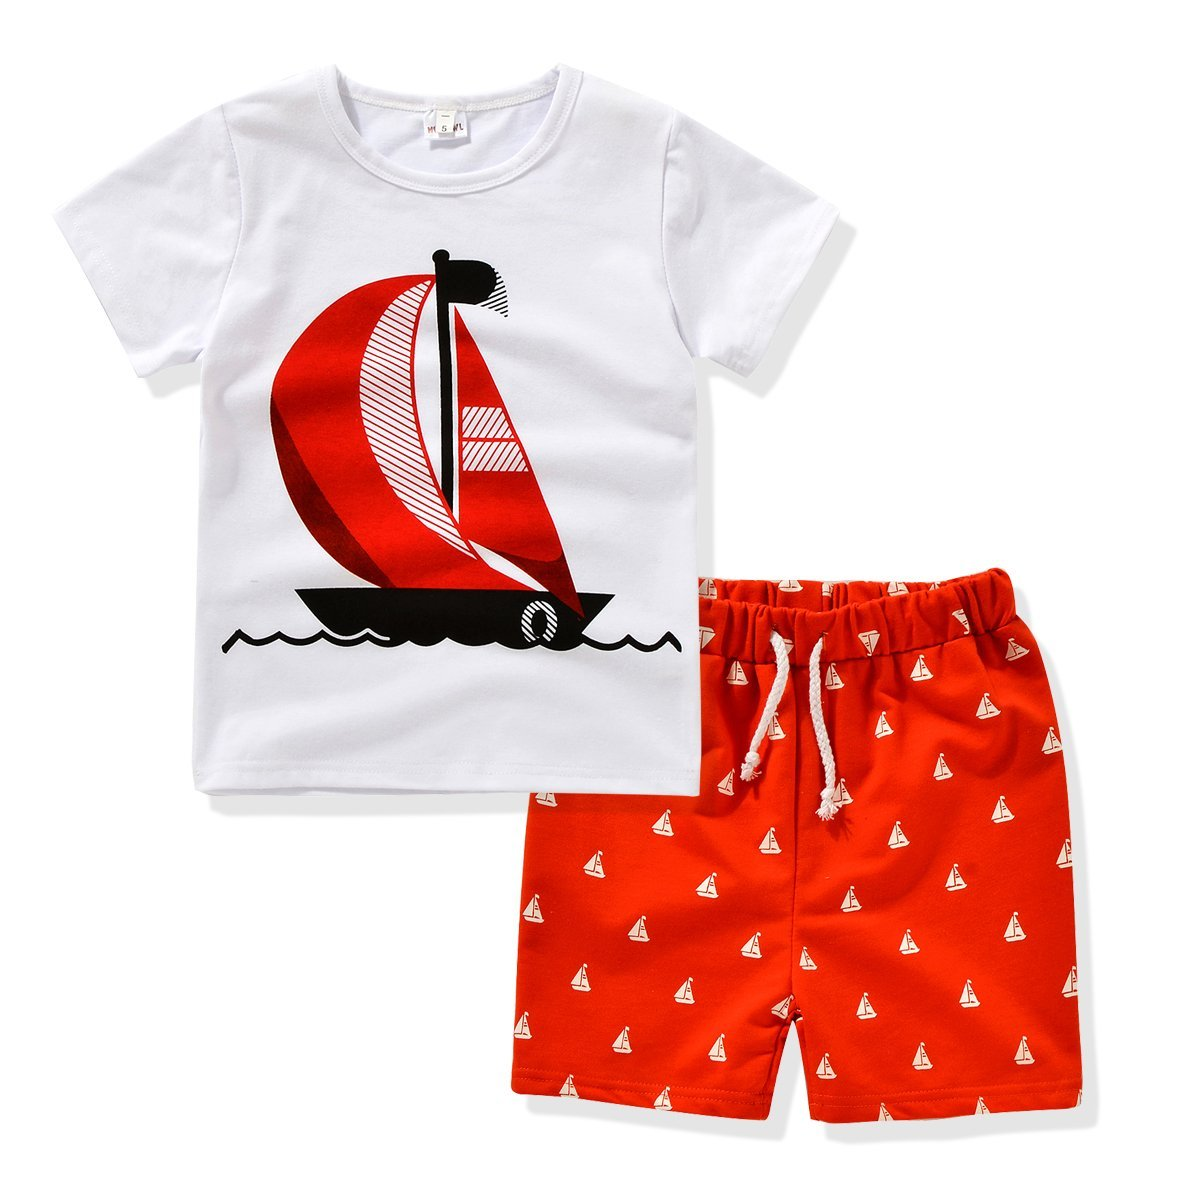 AJia Kids 2 Piece Short Sleeve Shirt and Shorts for 1 to 5 Years Olds Little Boy (2t, White/Red)